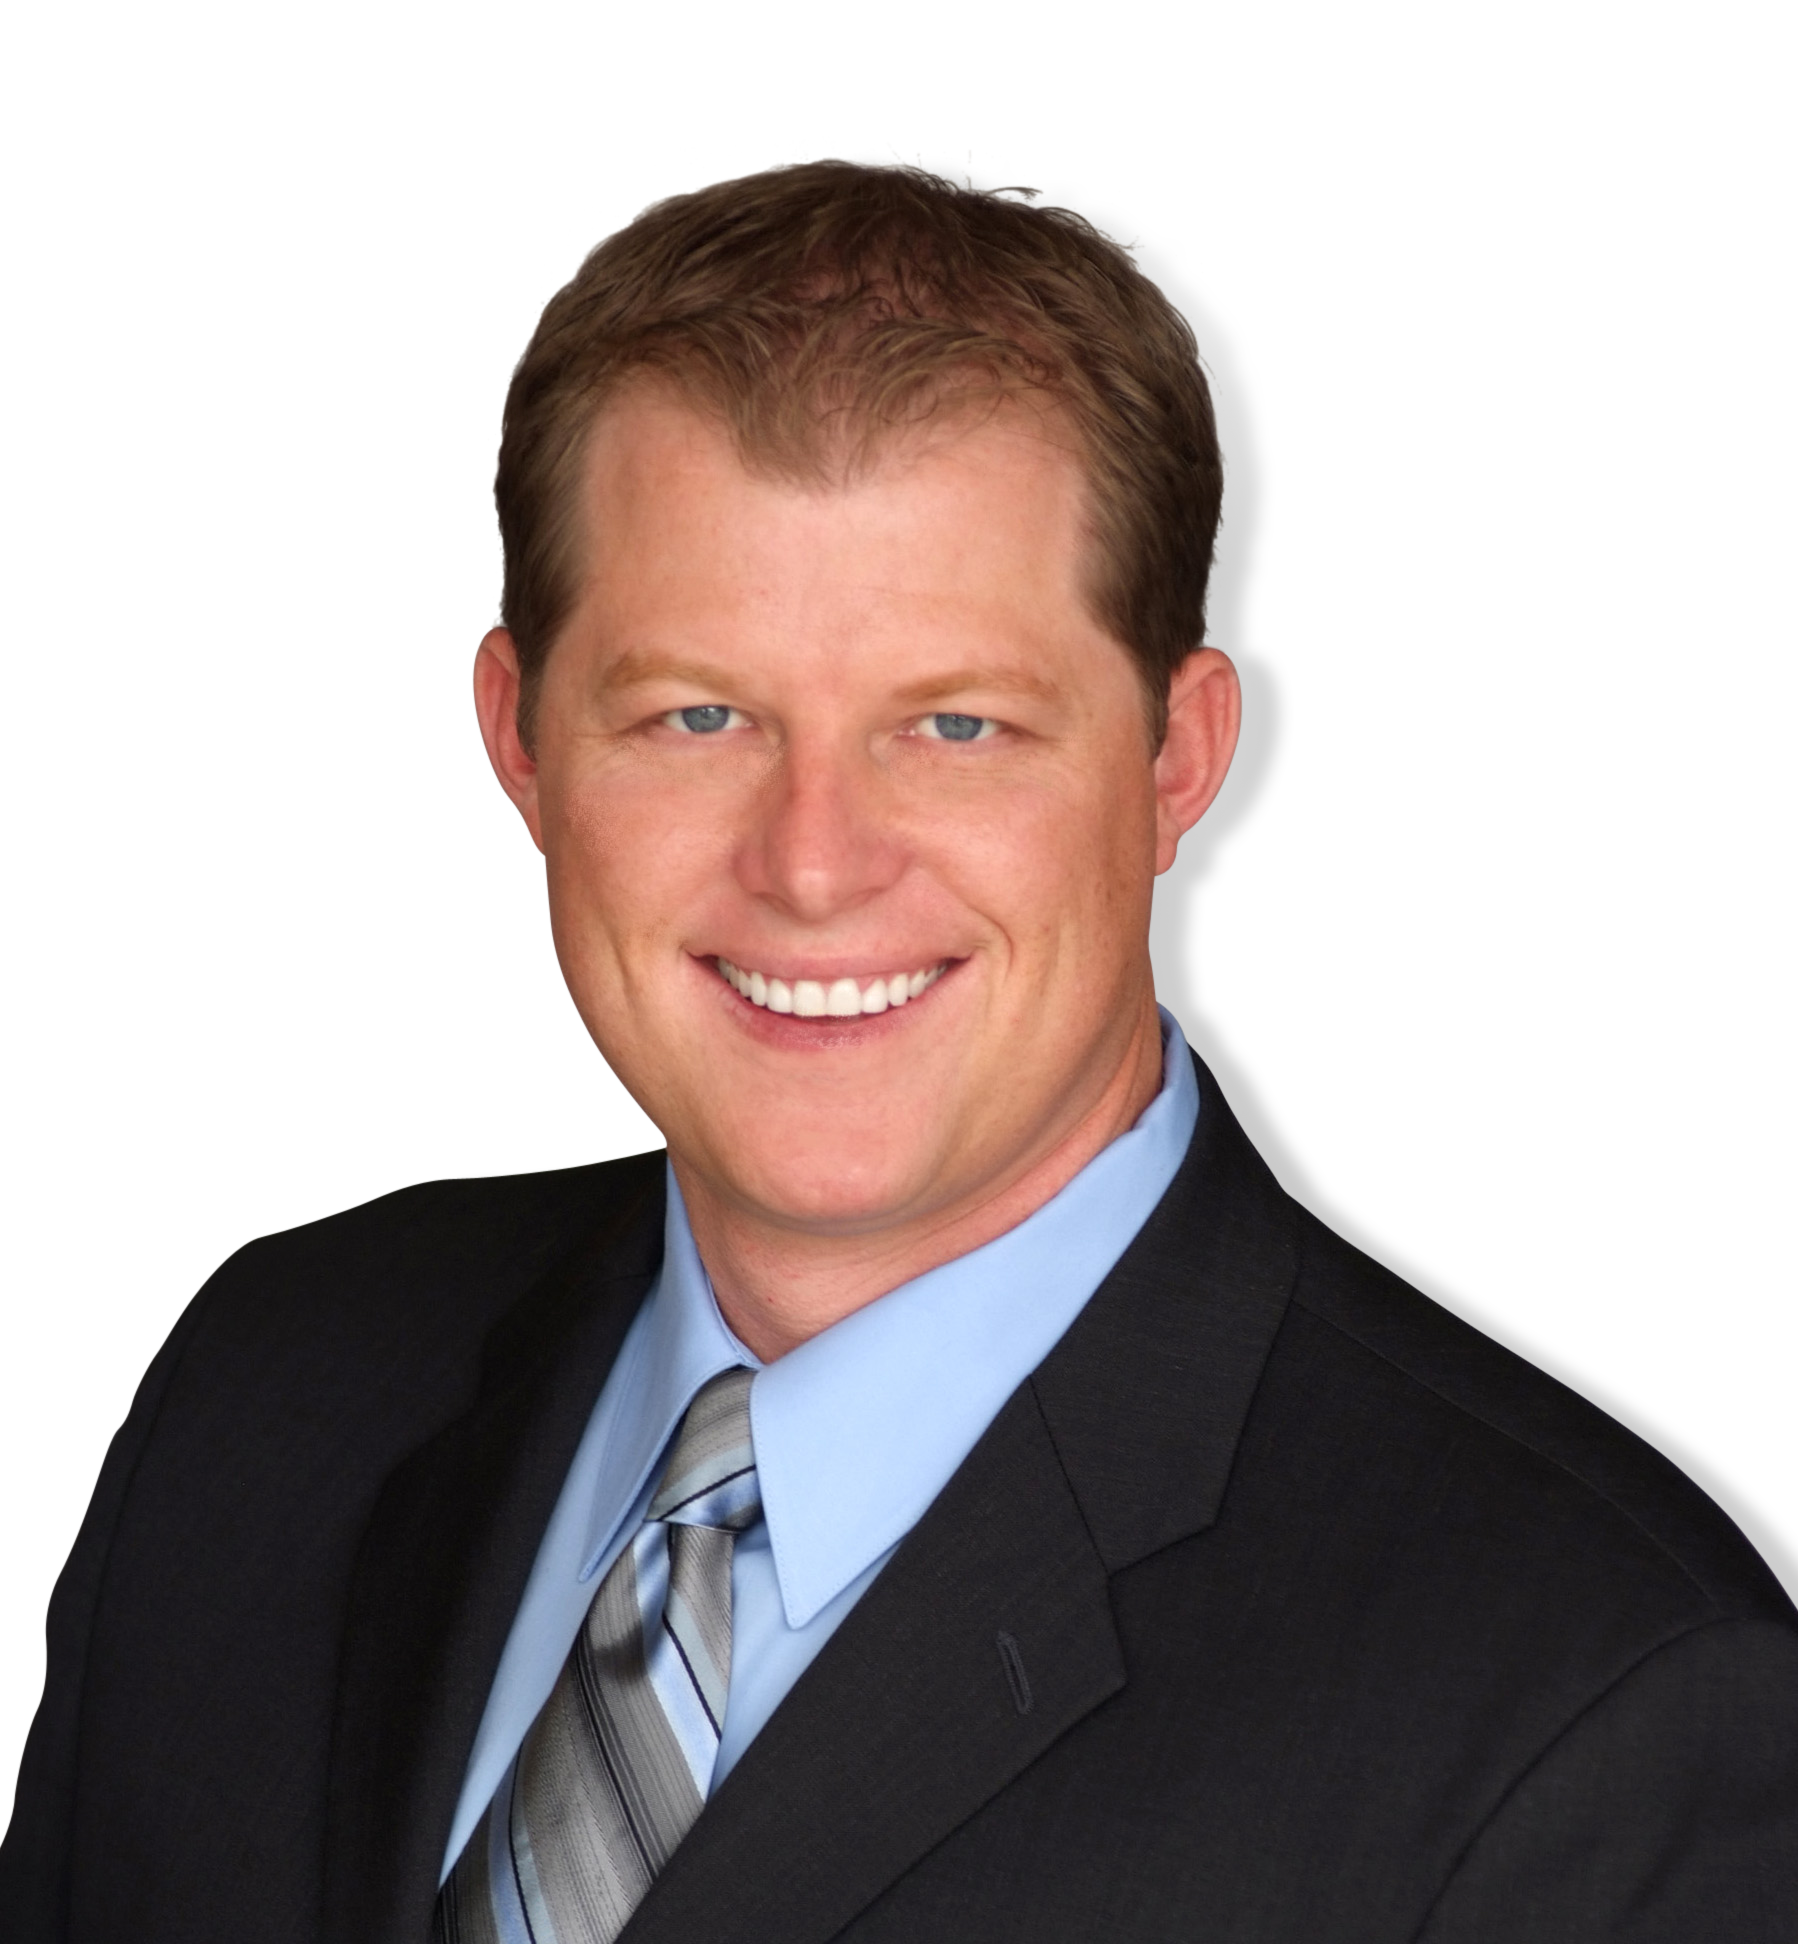 Dennis Goedhart, Broker Real Estate Broker